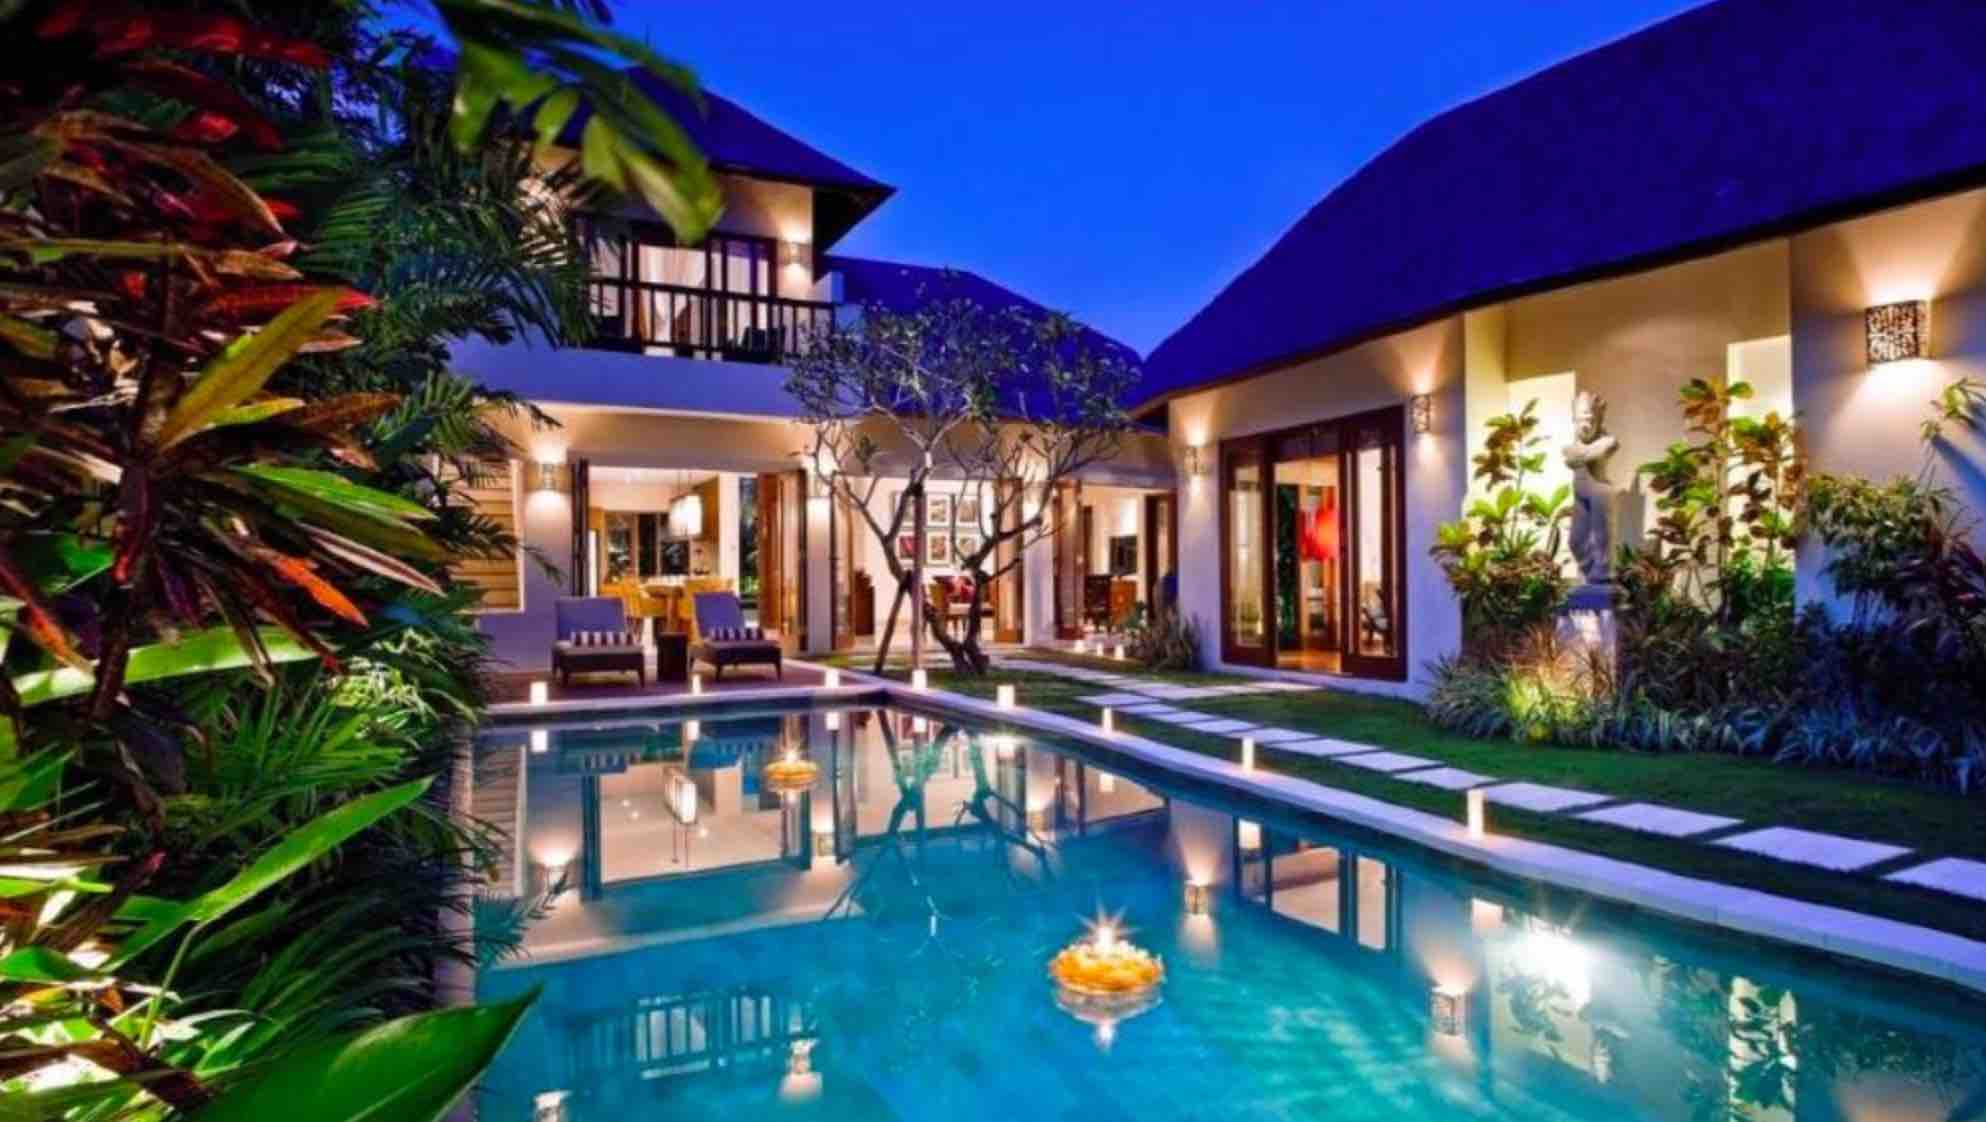 where to stay in Bali - villa songket in umalas